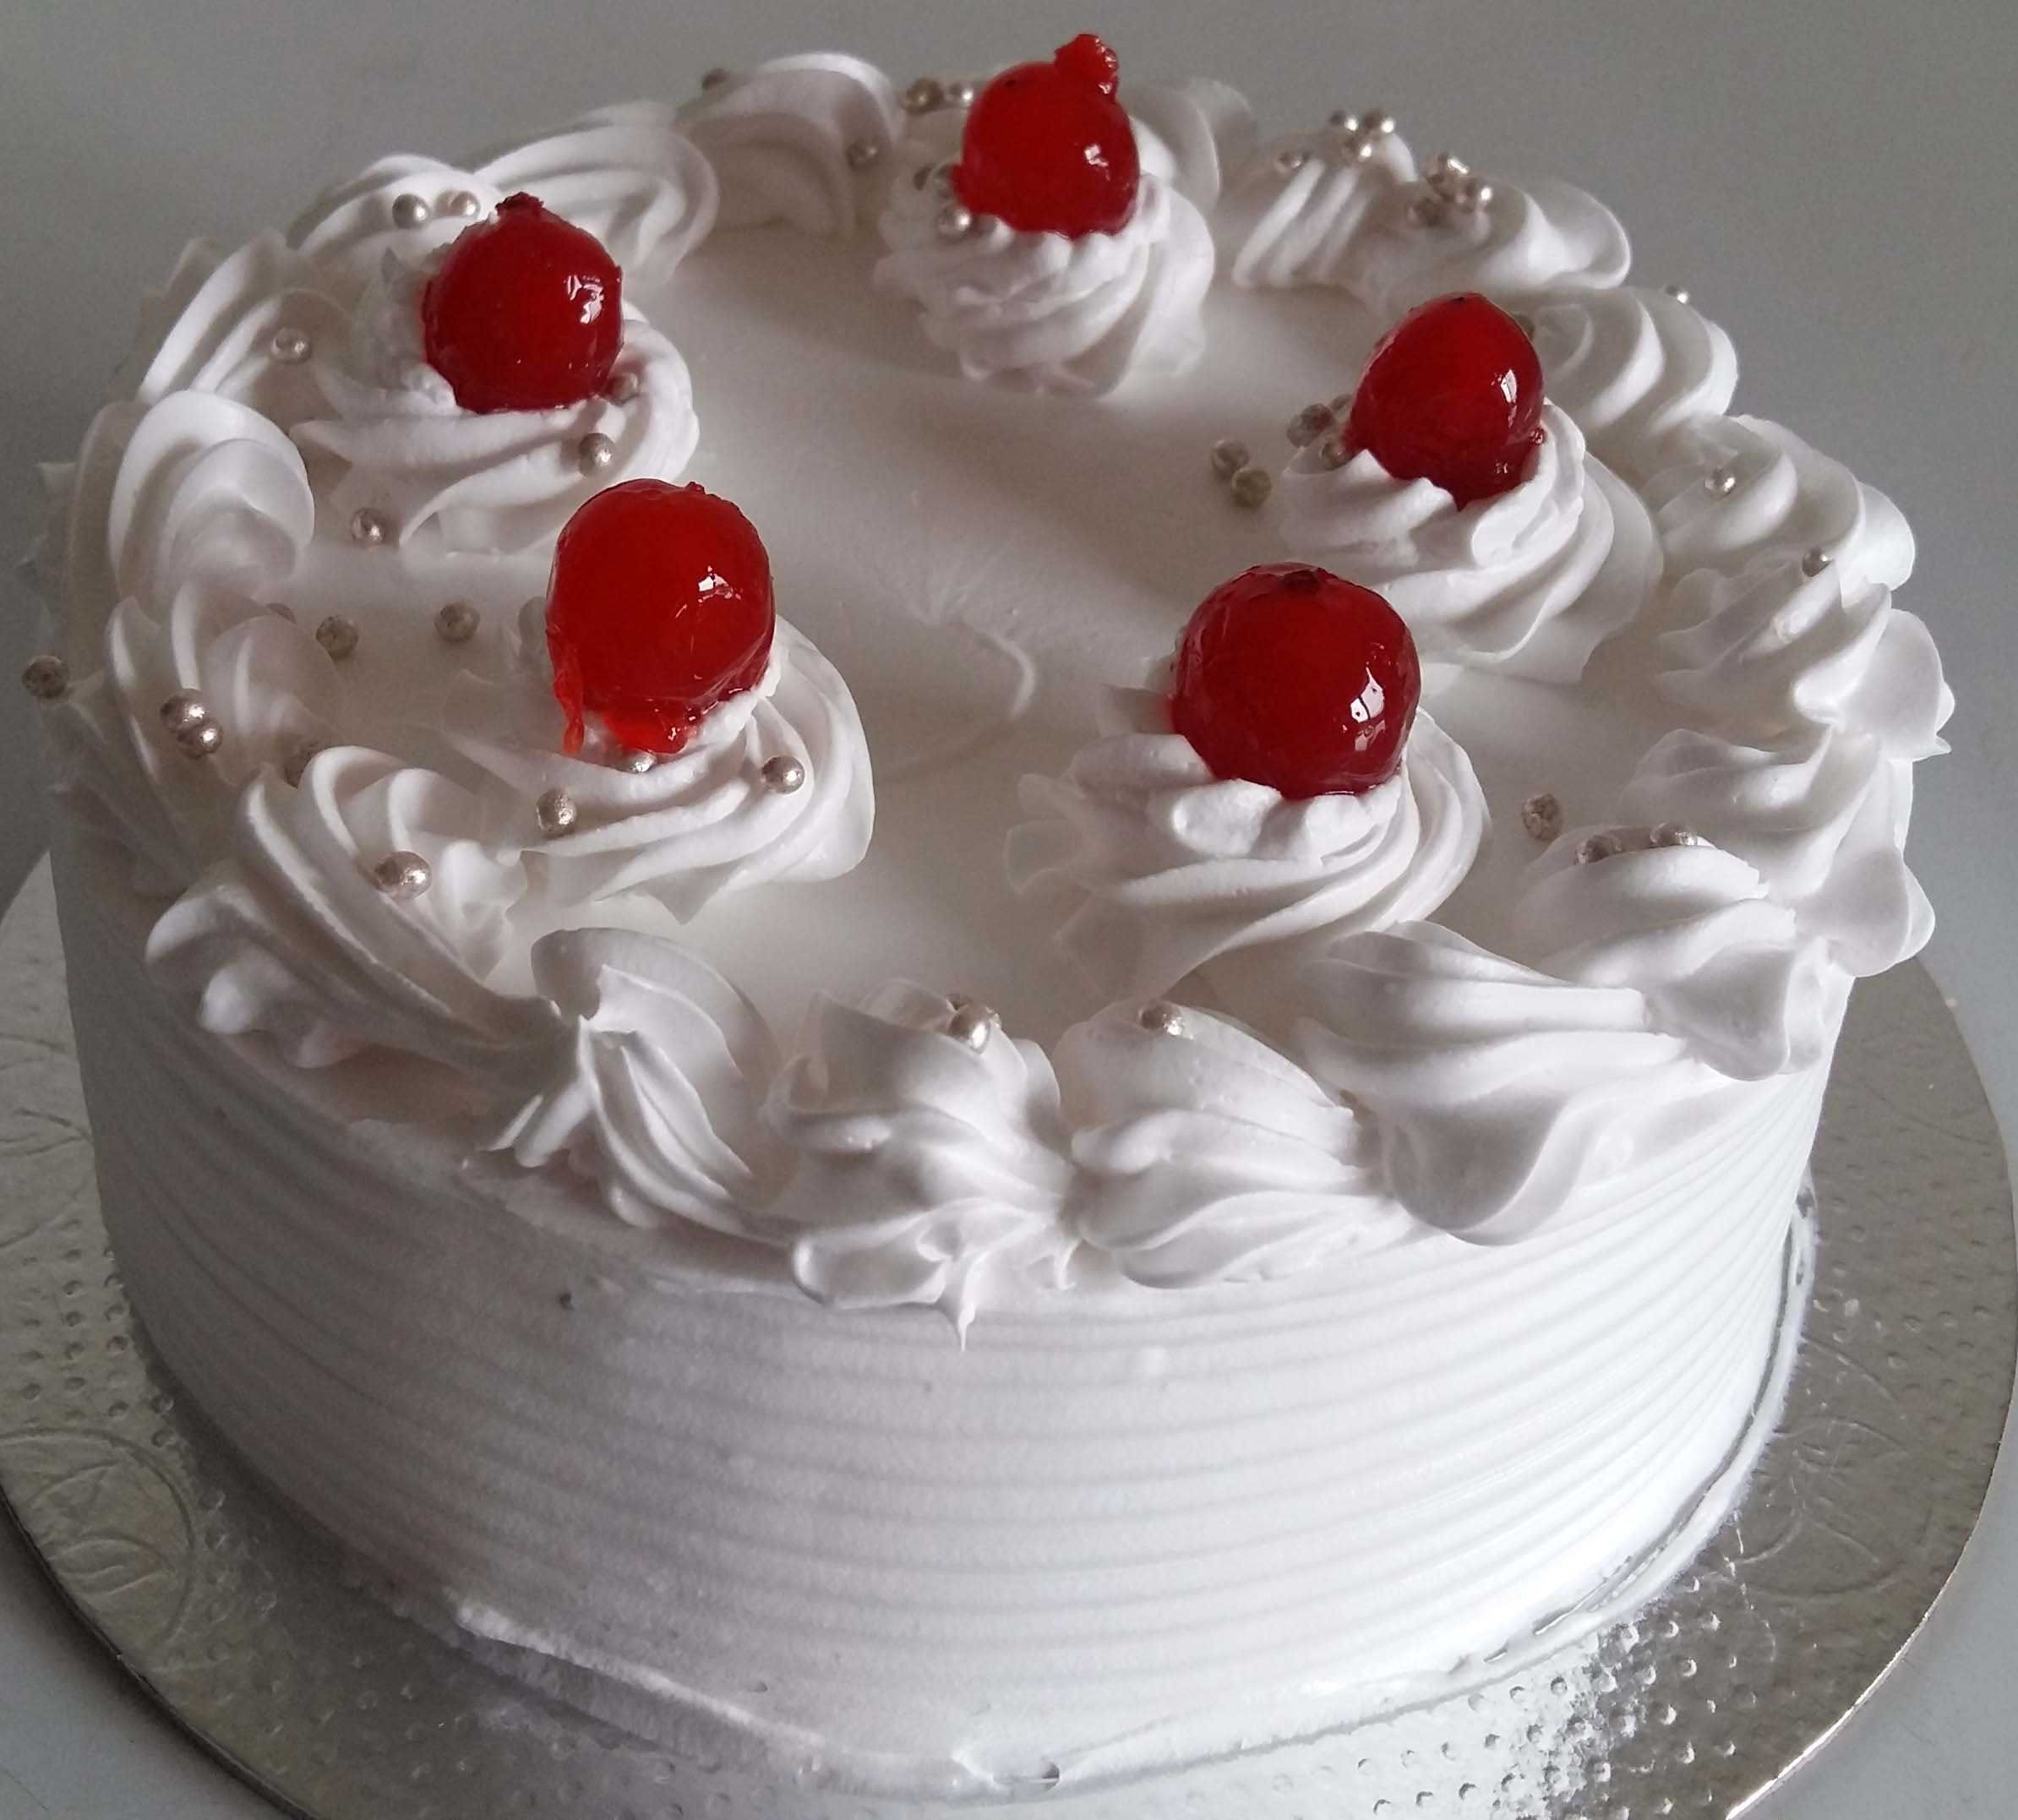 27 Excellent Image Of Order Birthday Cakes Online Vanilla Cake Bangalore Delivery